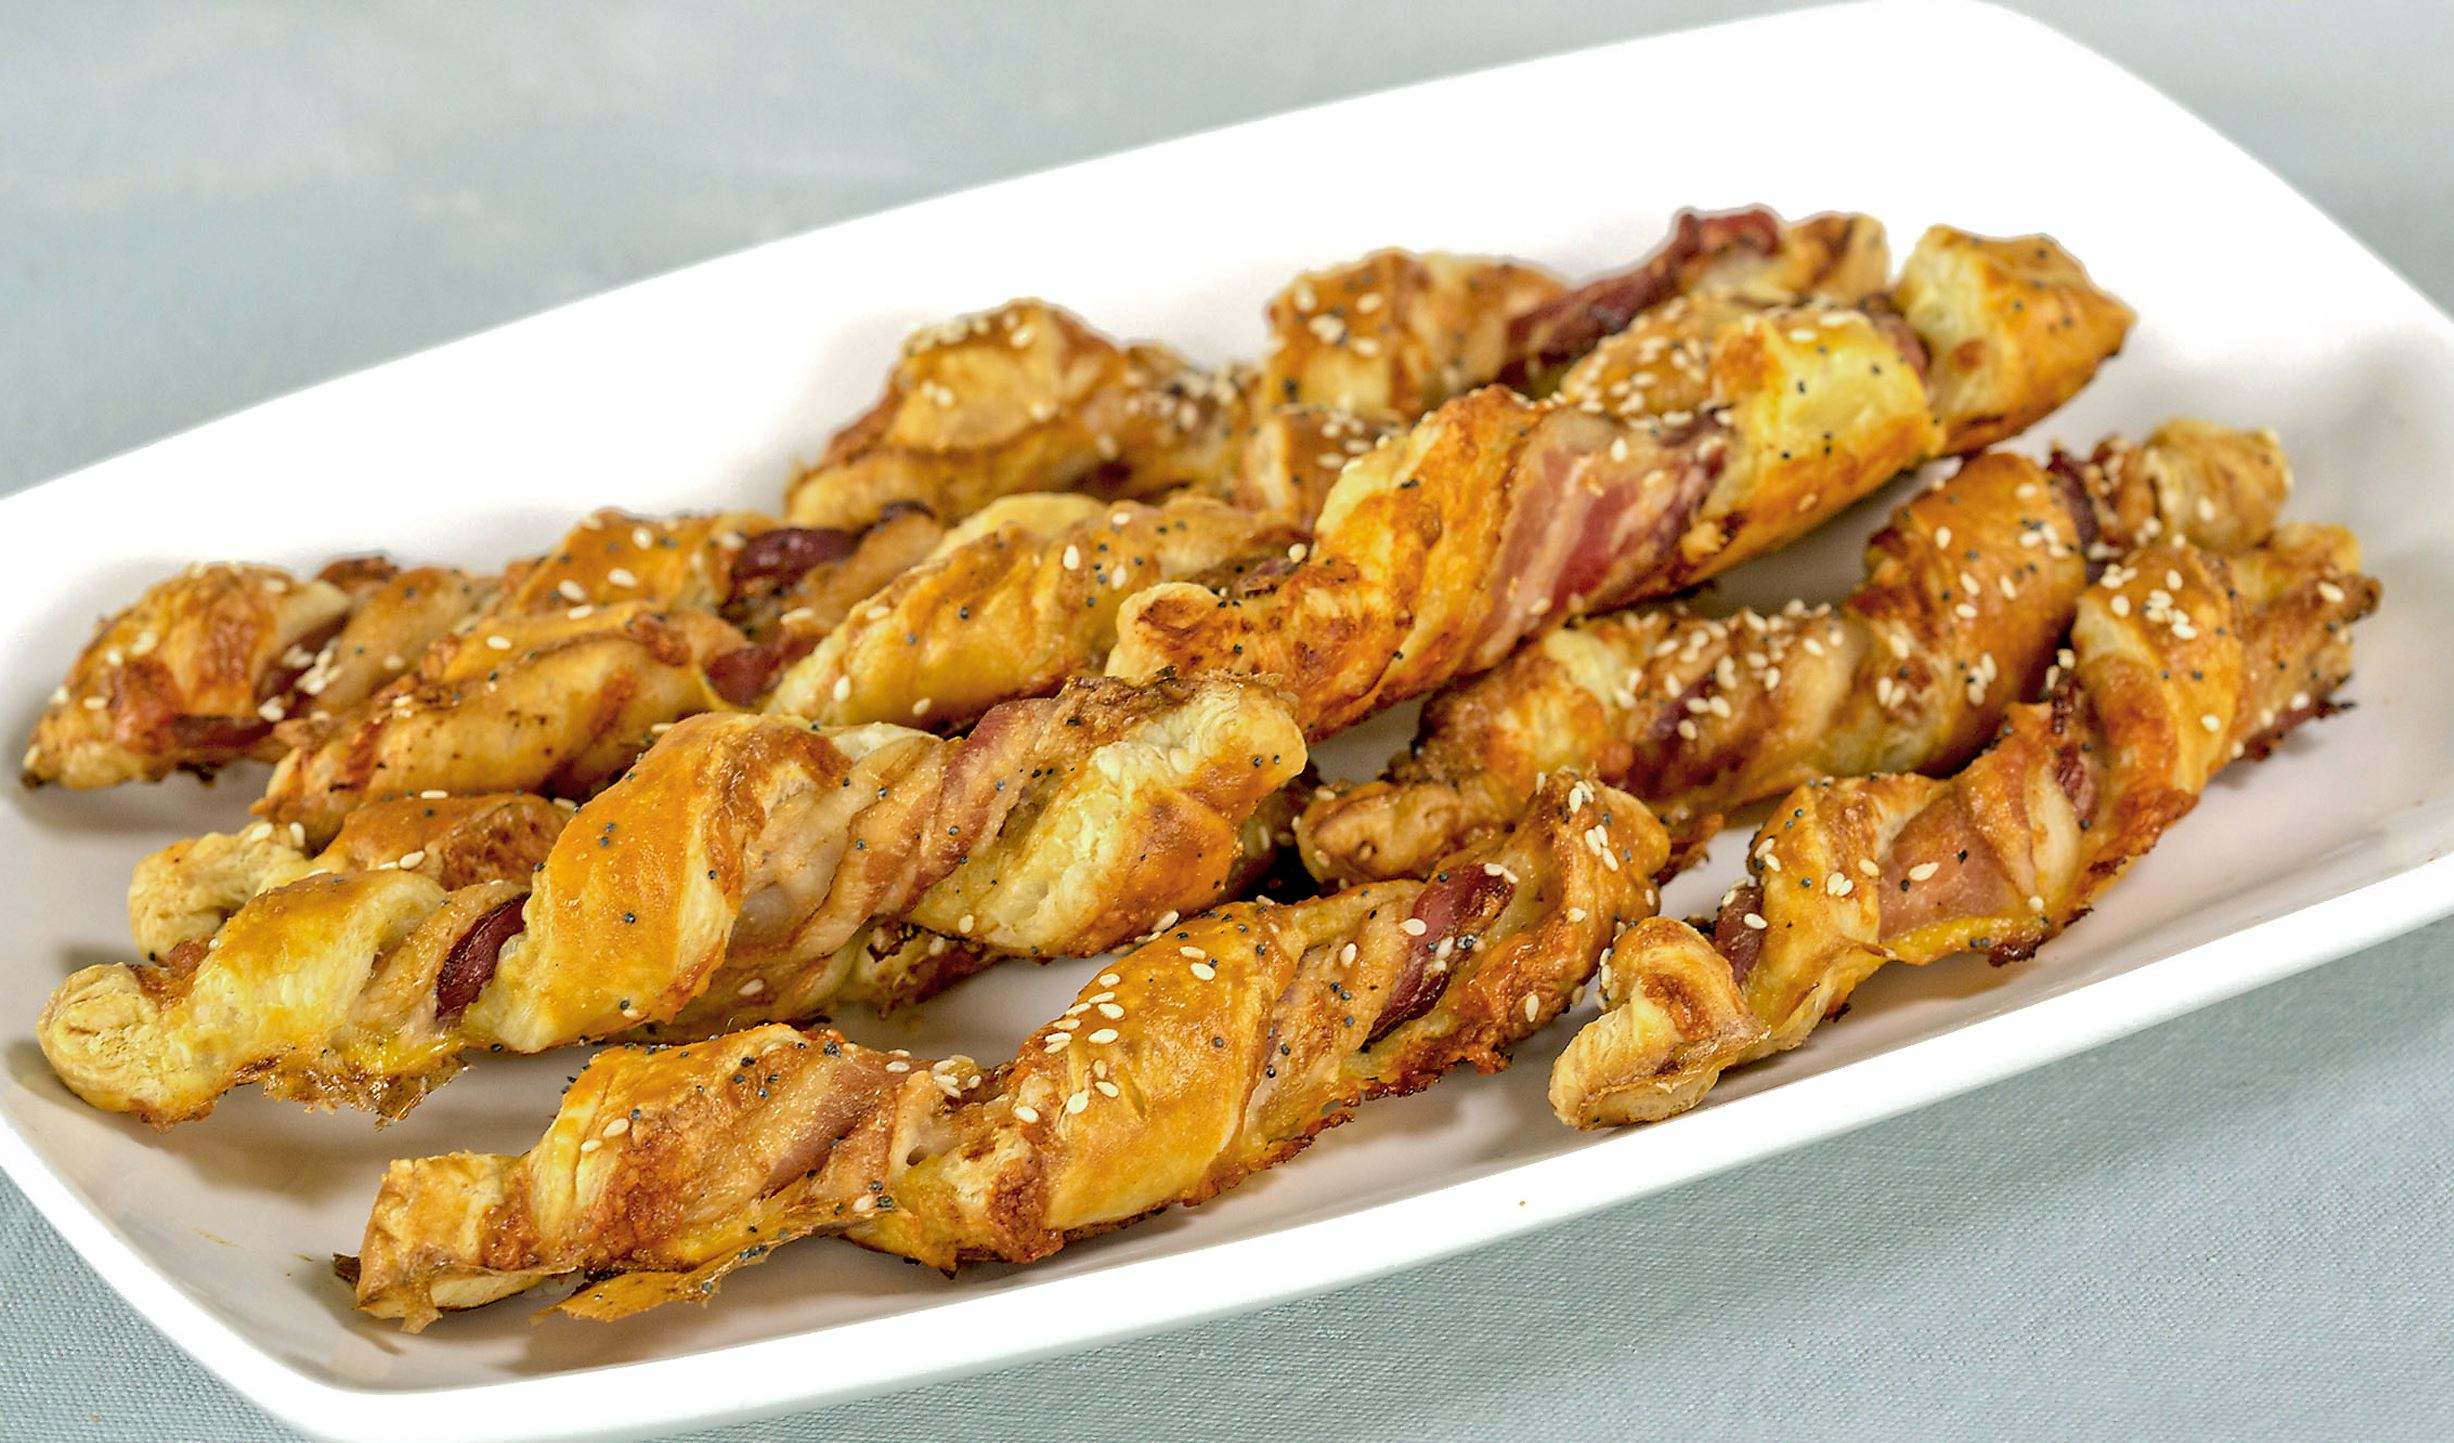 PHOTO____FOOD_SPRING-BRUNCH-RECIPES_7_DE-8 Bacon and cheddar twists.